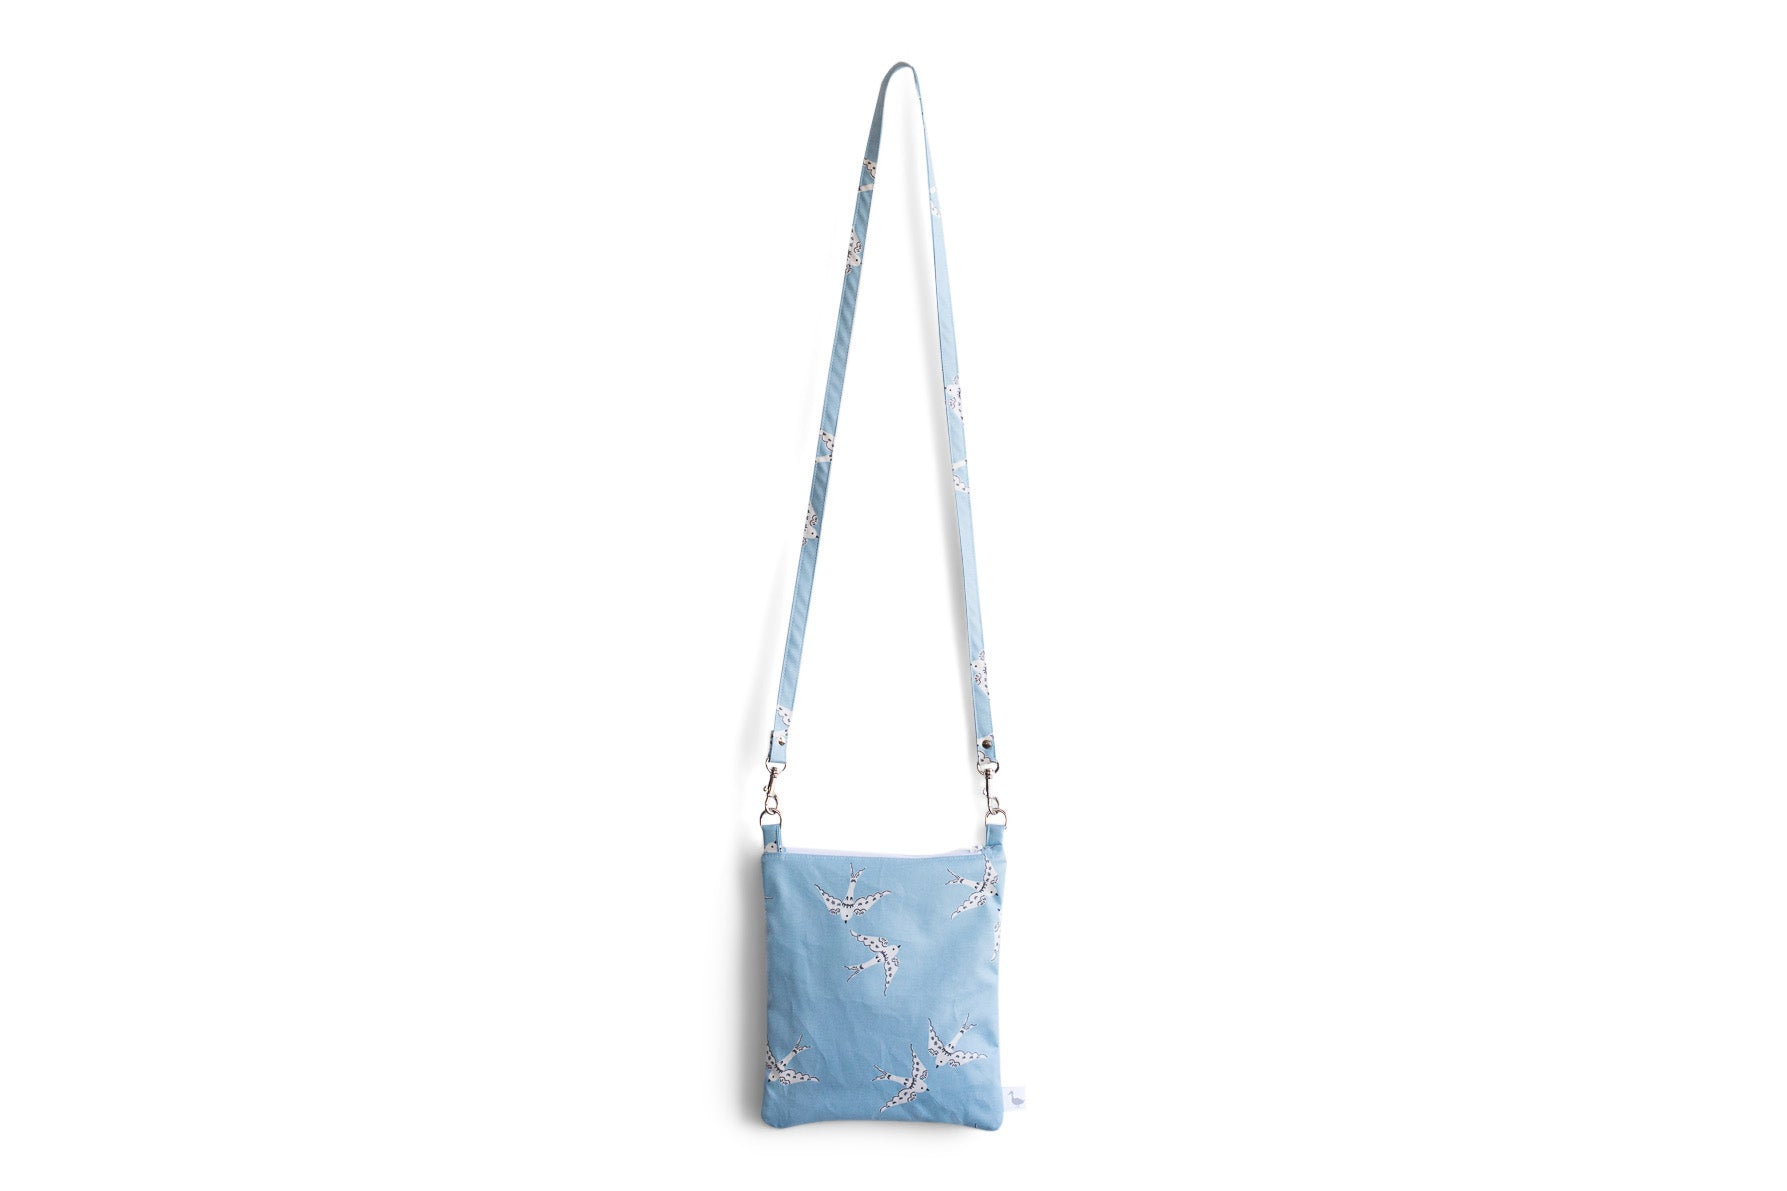 Small Crossbody Purse with Light Blue with White Doves Fabric